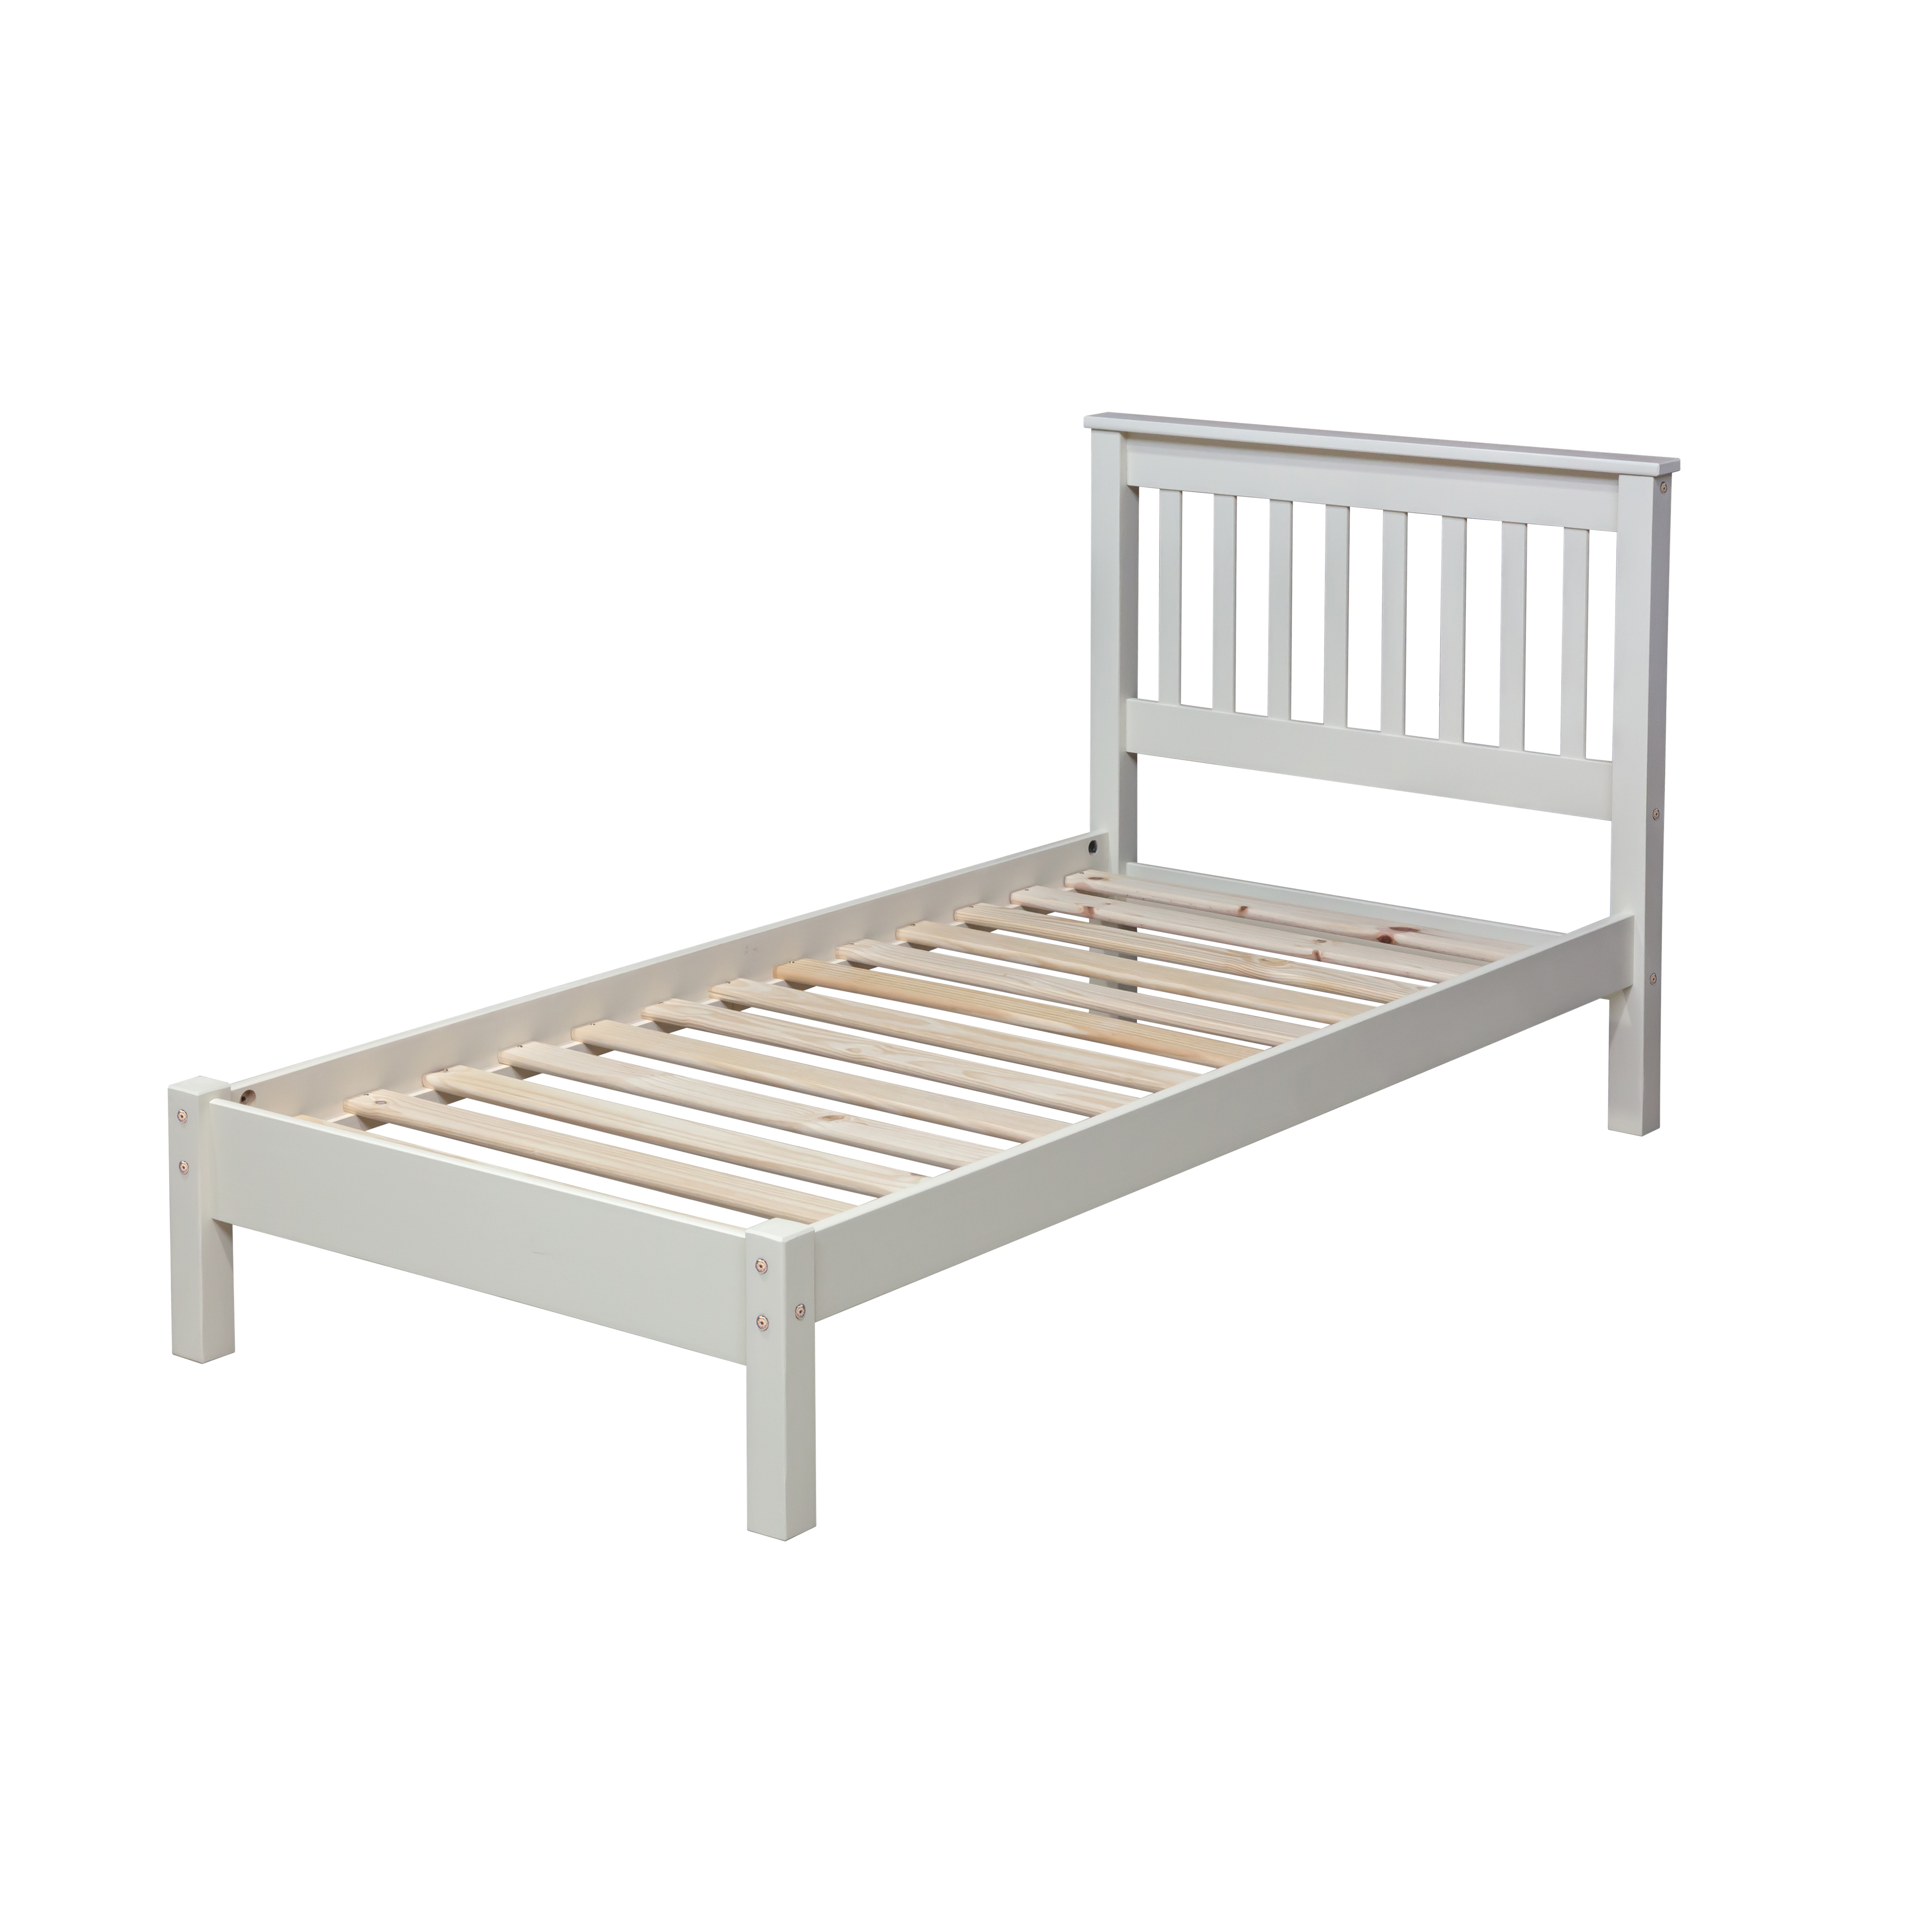 3' Slatted Low End Bedstead.